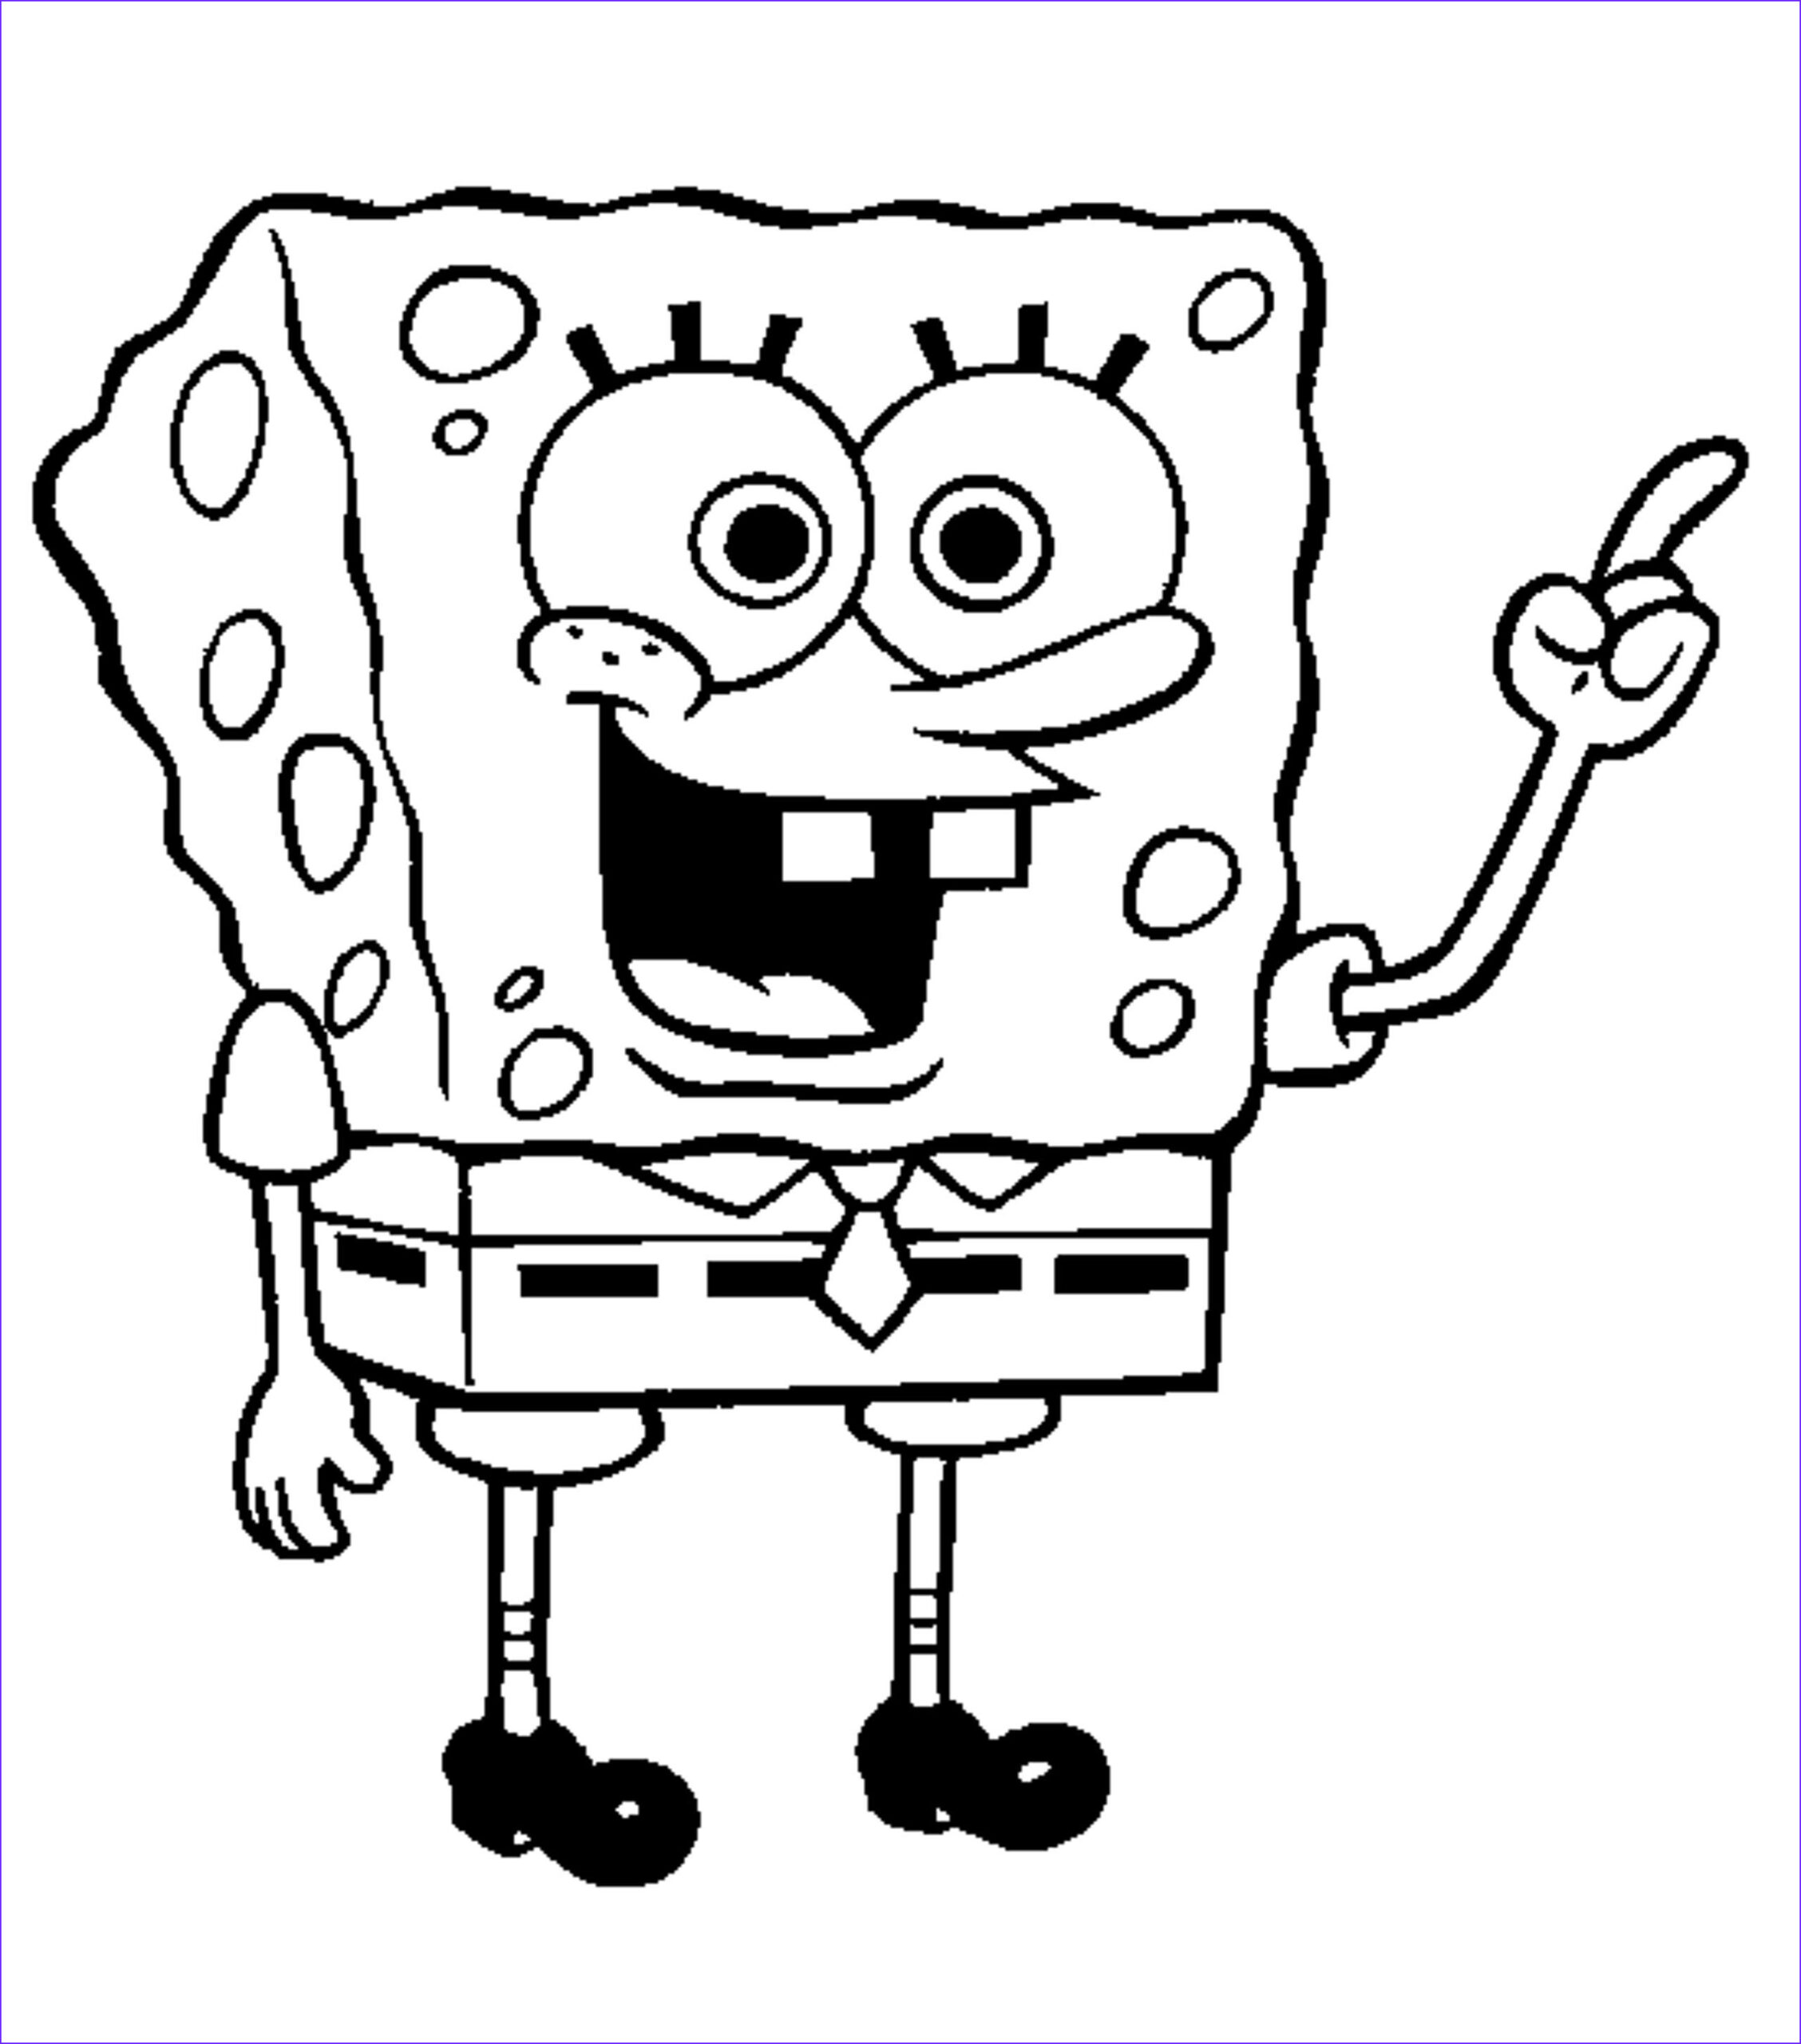 Spongebob Coloring Book Inspirational Stock Kids Cartoons In Black and White Yahoo Image Search